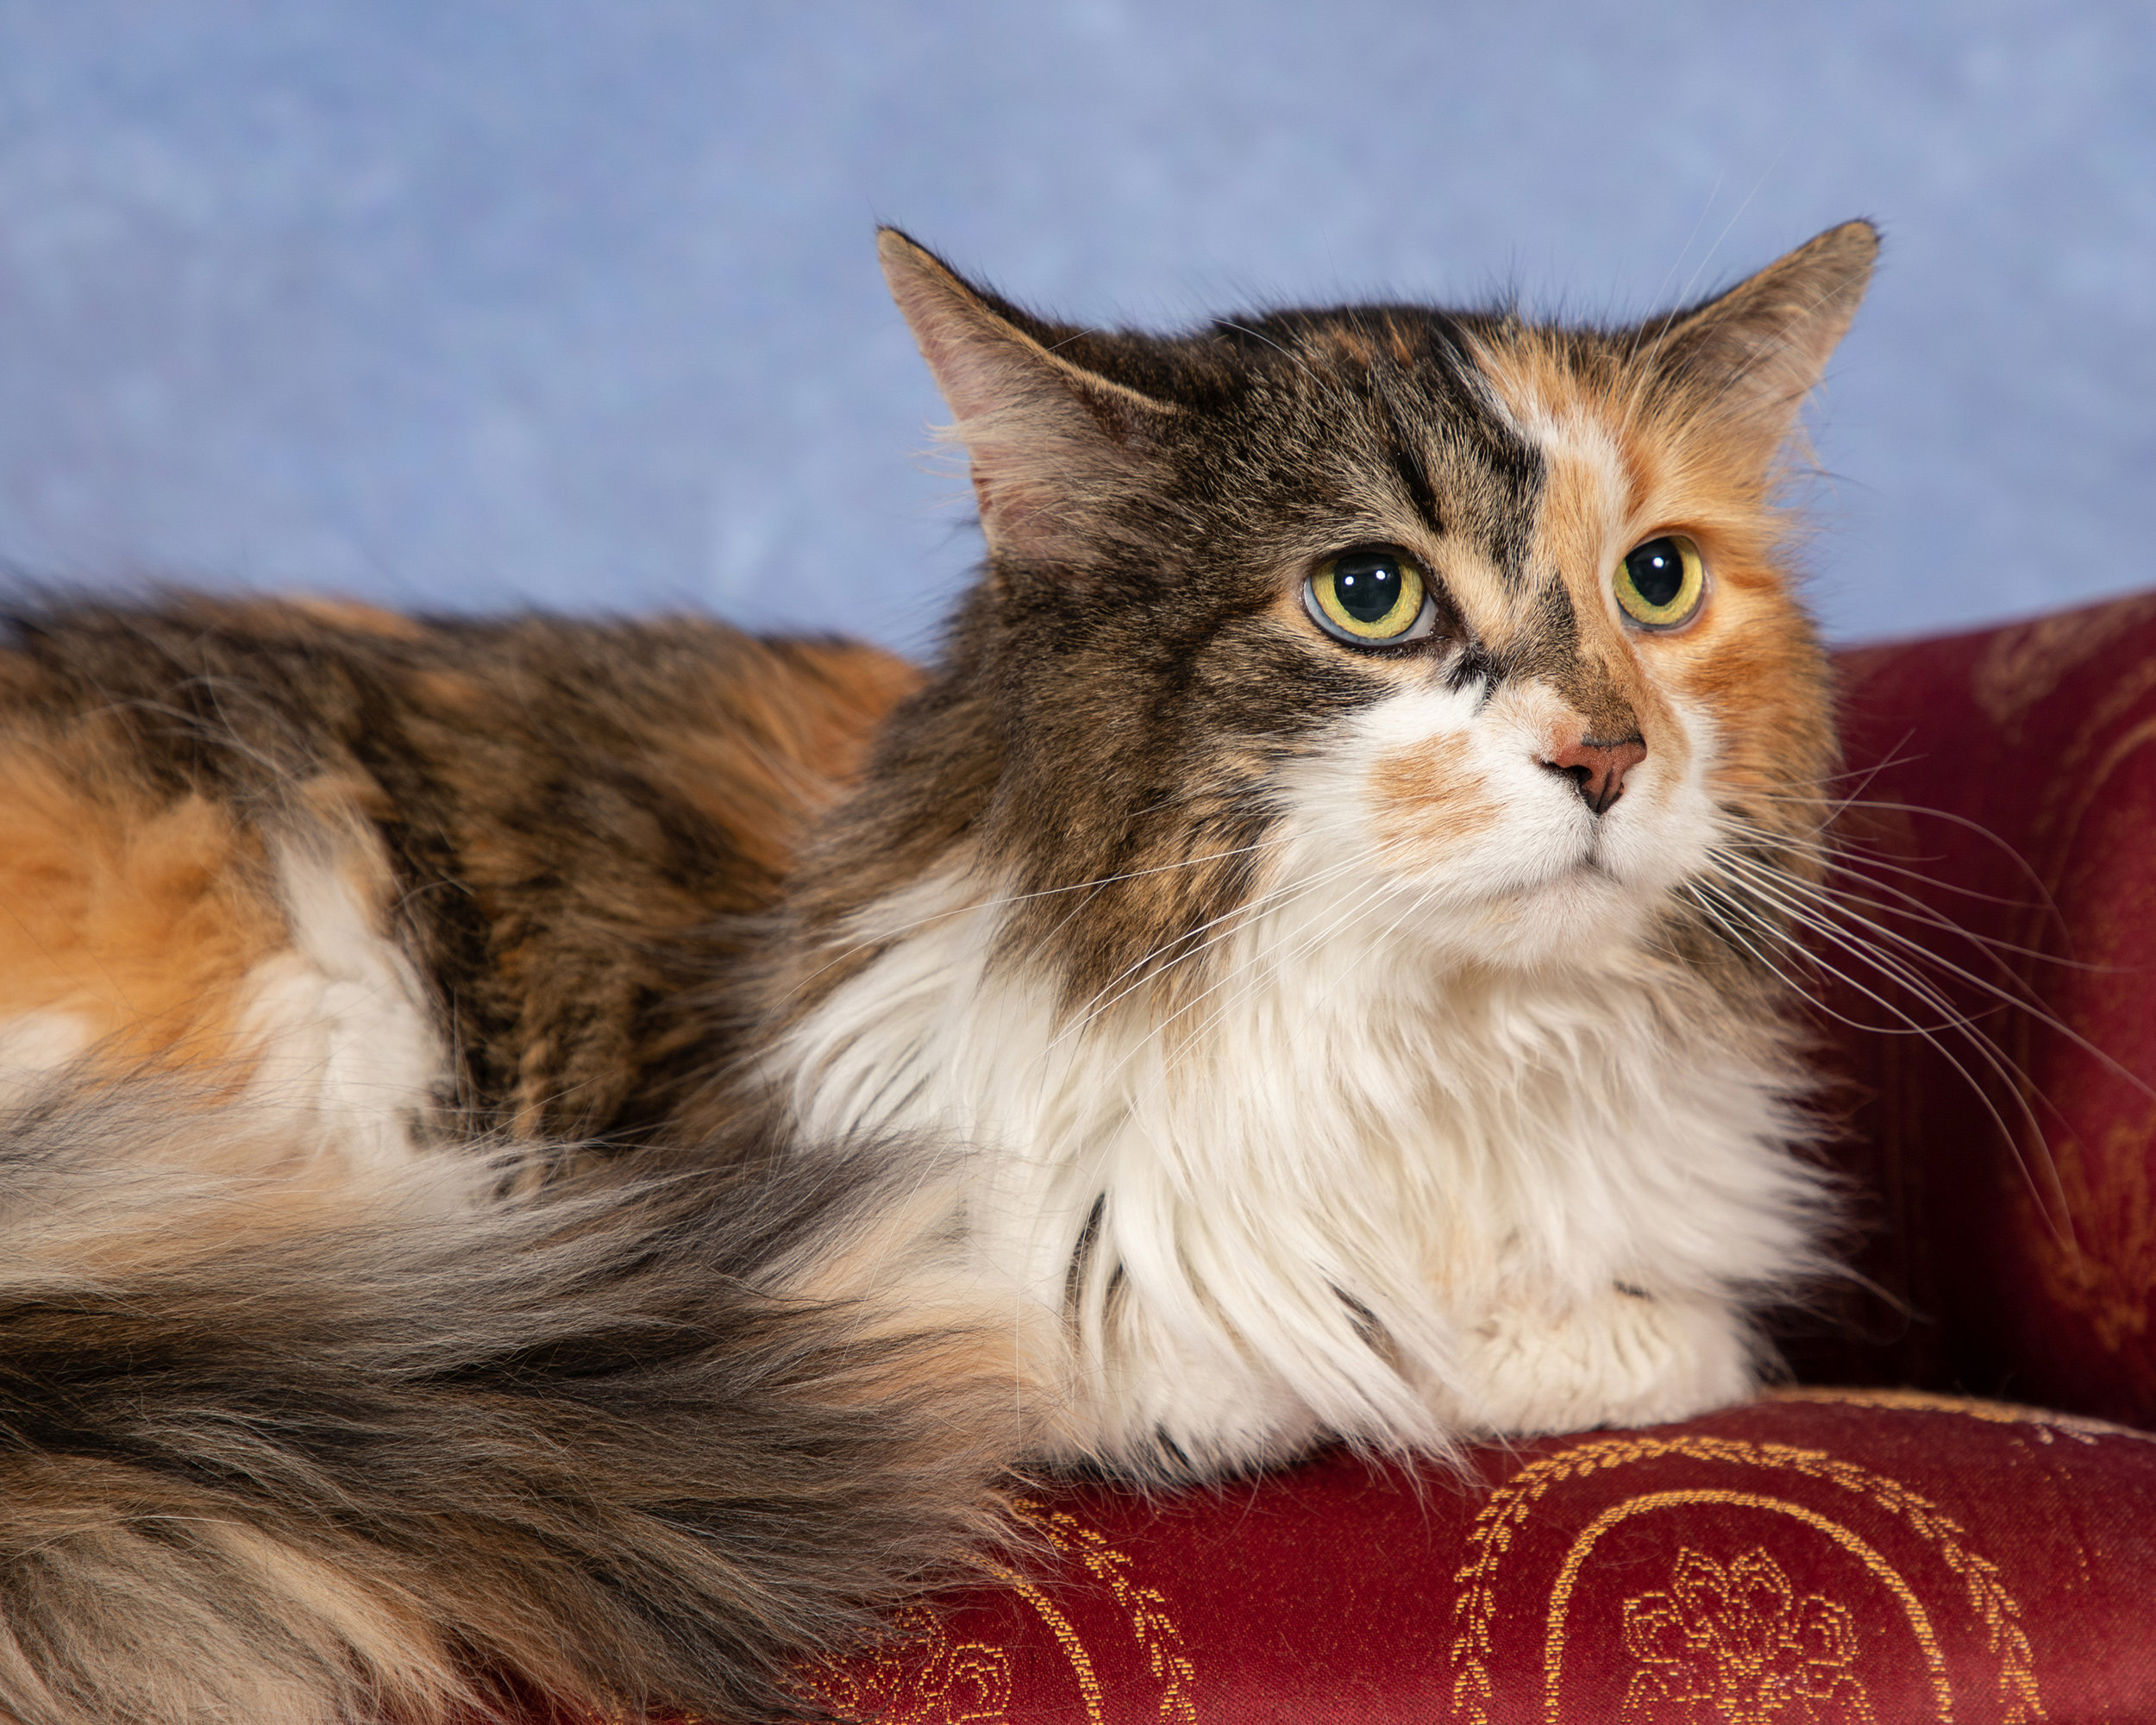 From our SPCA Calendar Photoshoot